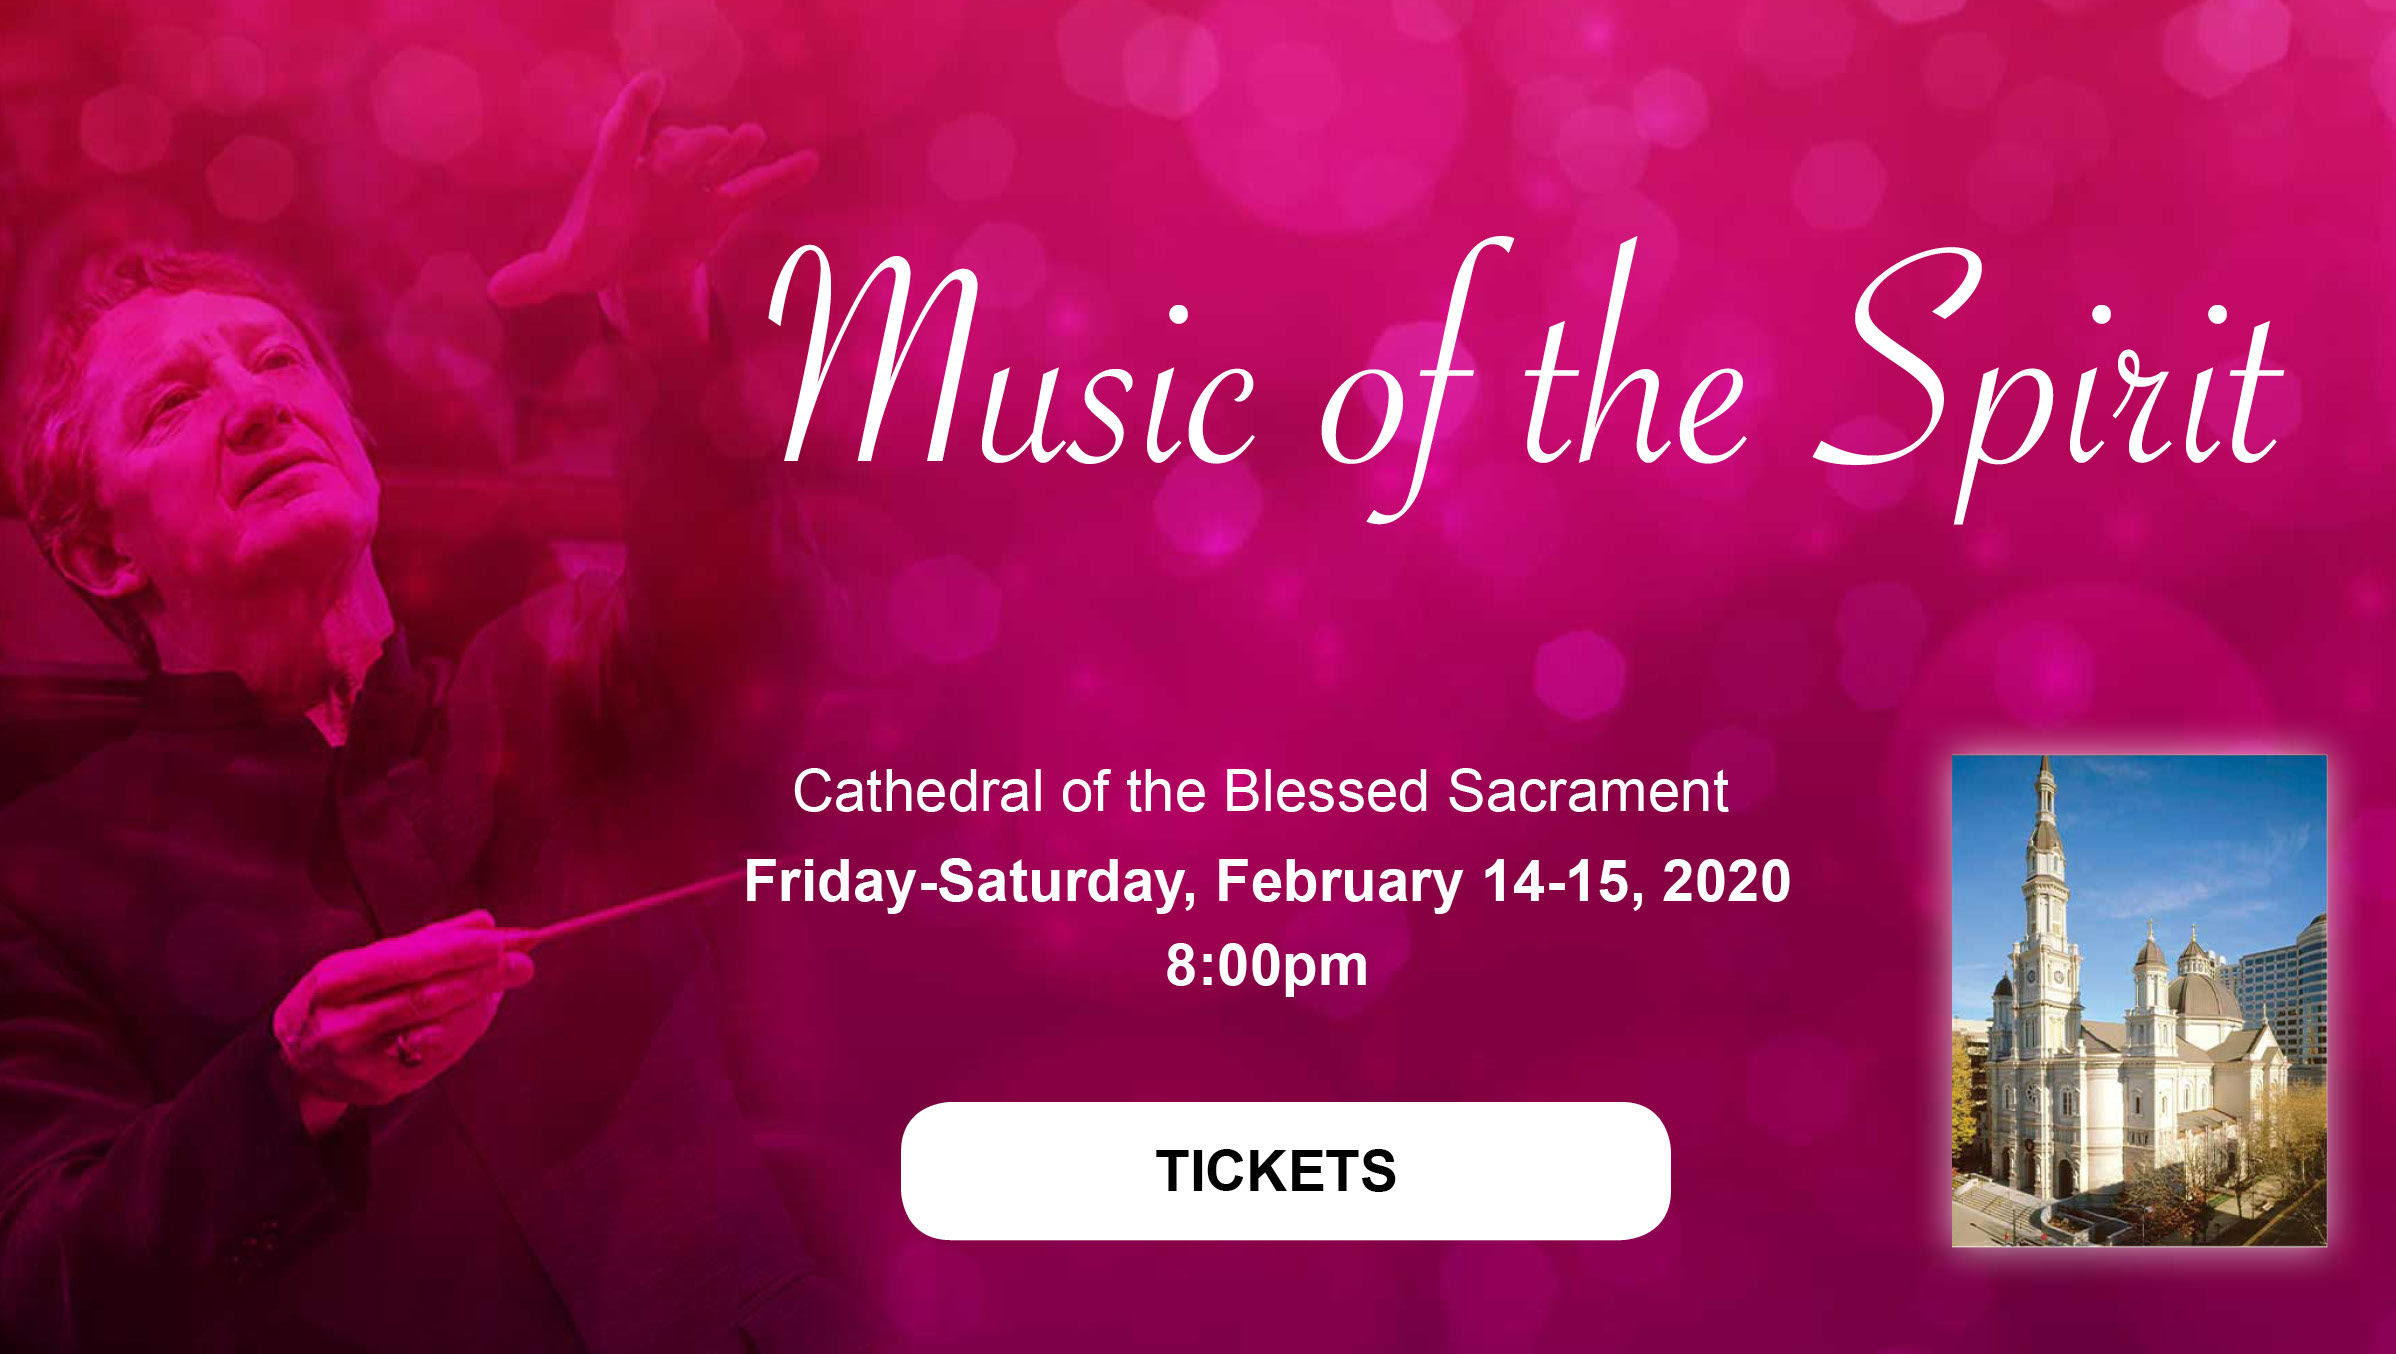 Sacramento Philharmonic & Opera: Music of the Spirit